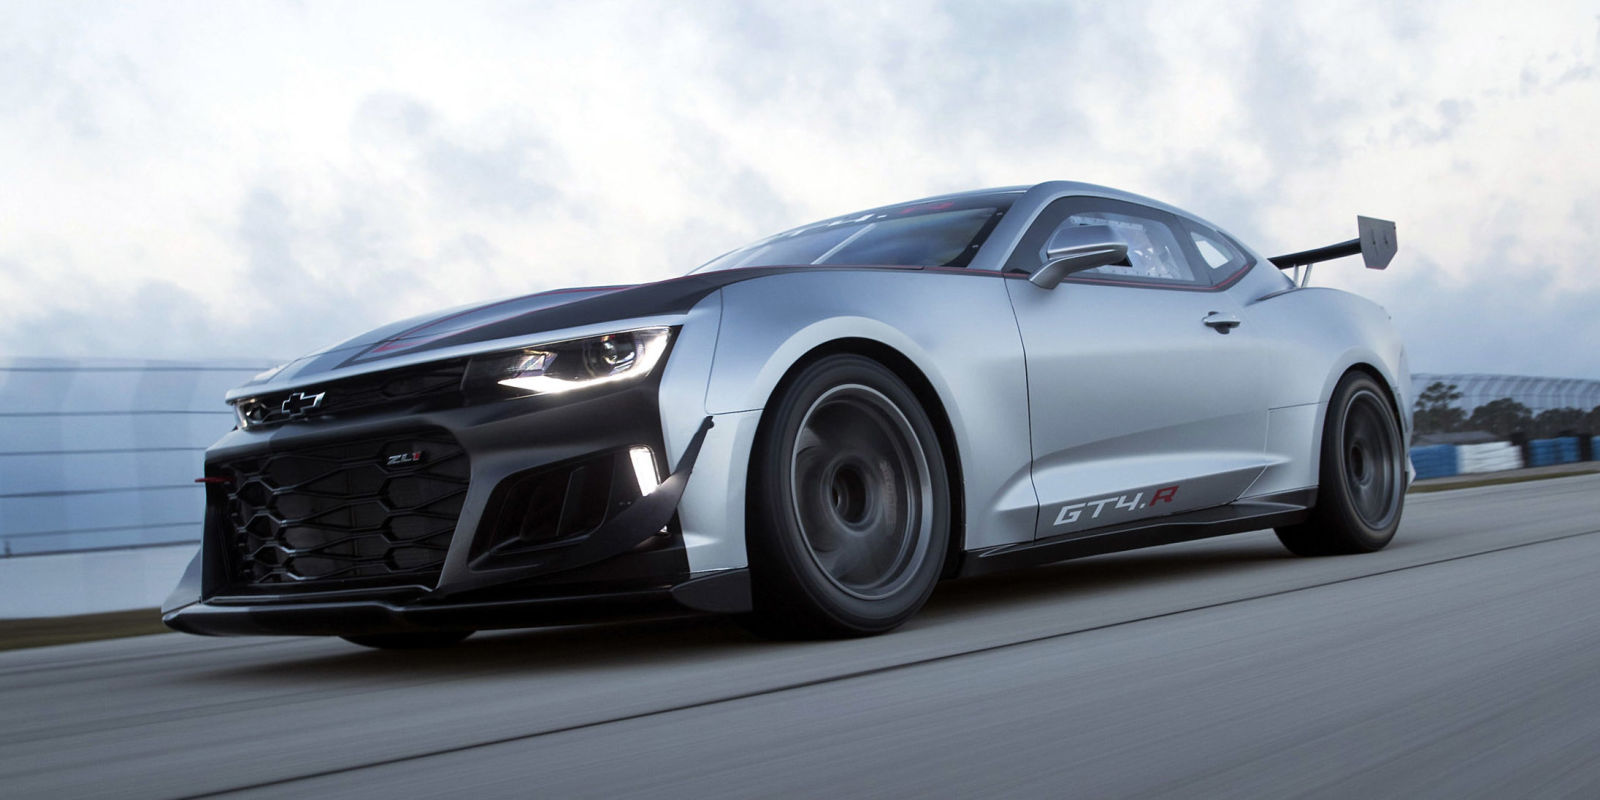 All Types pictures of the new camaro : Here's the New Chevy Camaro GT4.R Race Car in the Flesh - The Drive